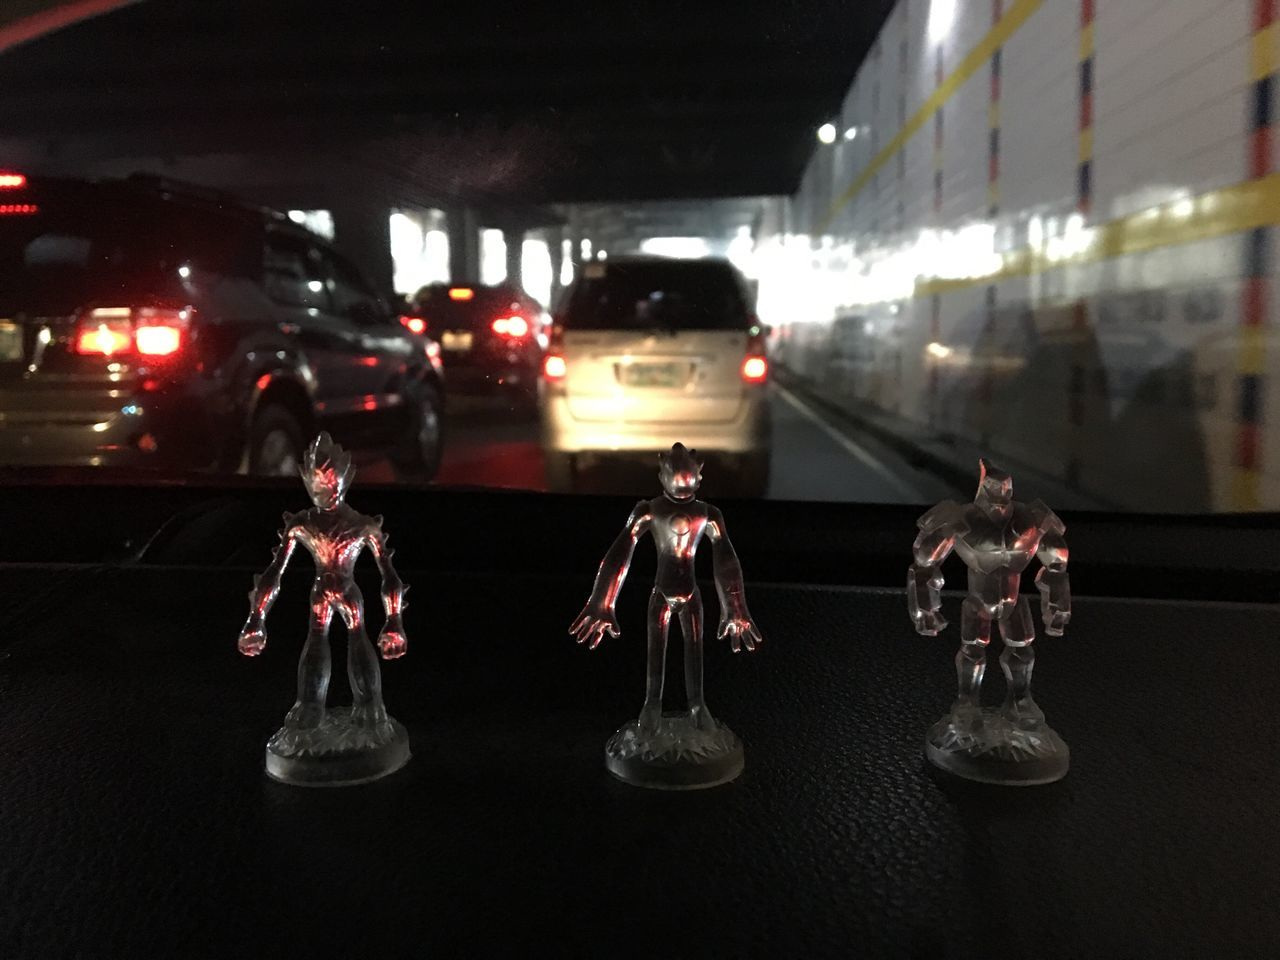 Japanese cartoon robot toys Toys Toysphotography Toy Photography Toys On Car Japanese Culture Japanese Cartoons Japanese Robots Japanese  Power Rangers Ultraman Super Hero On Board A Cab Taxi Ride Traffic Jam